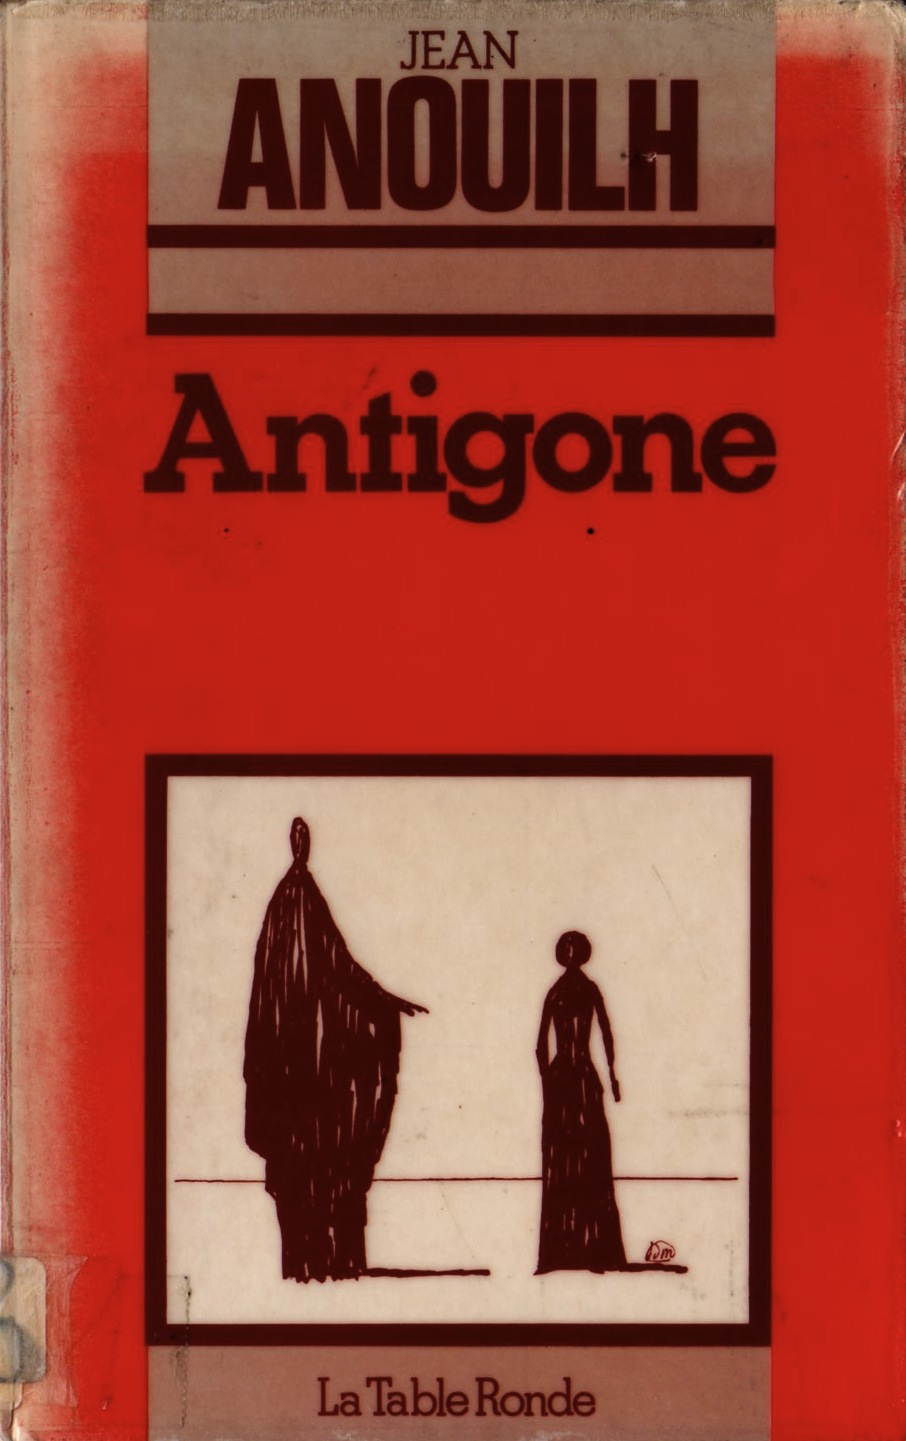 antigone 9 [ ] antigone page 9 by sophocles 441 bc translated by r c jebb  creon: i will take her where the path is loneliest, and hide her, living, in rocky vault, with so much food set forth as piety prescribes, that the city may avoid a public stain.